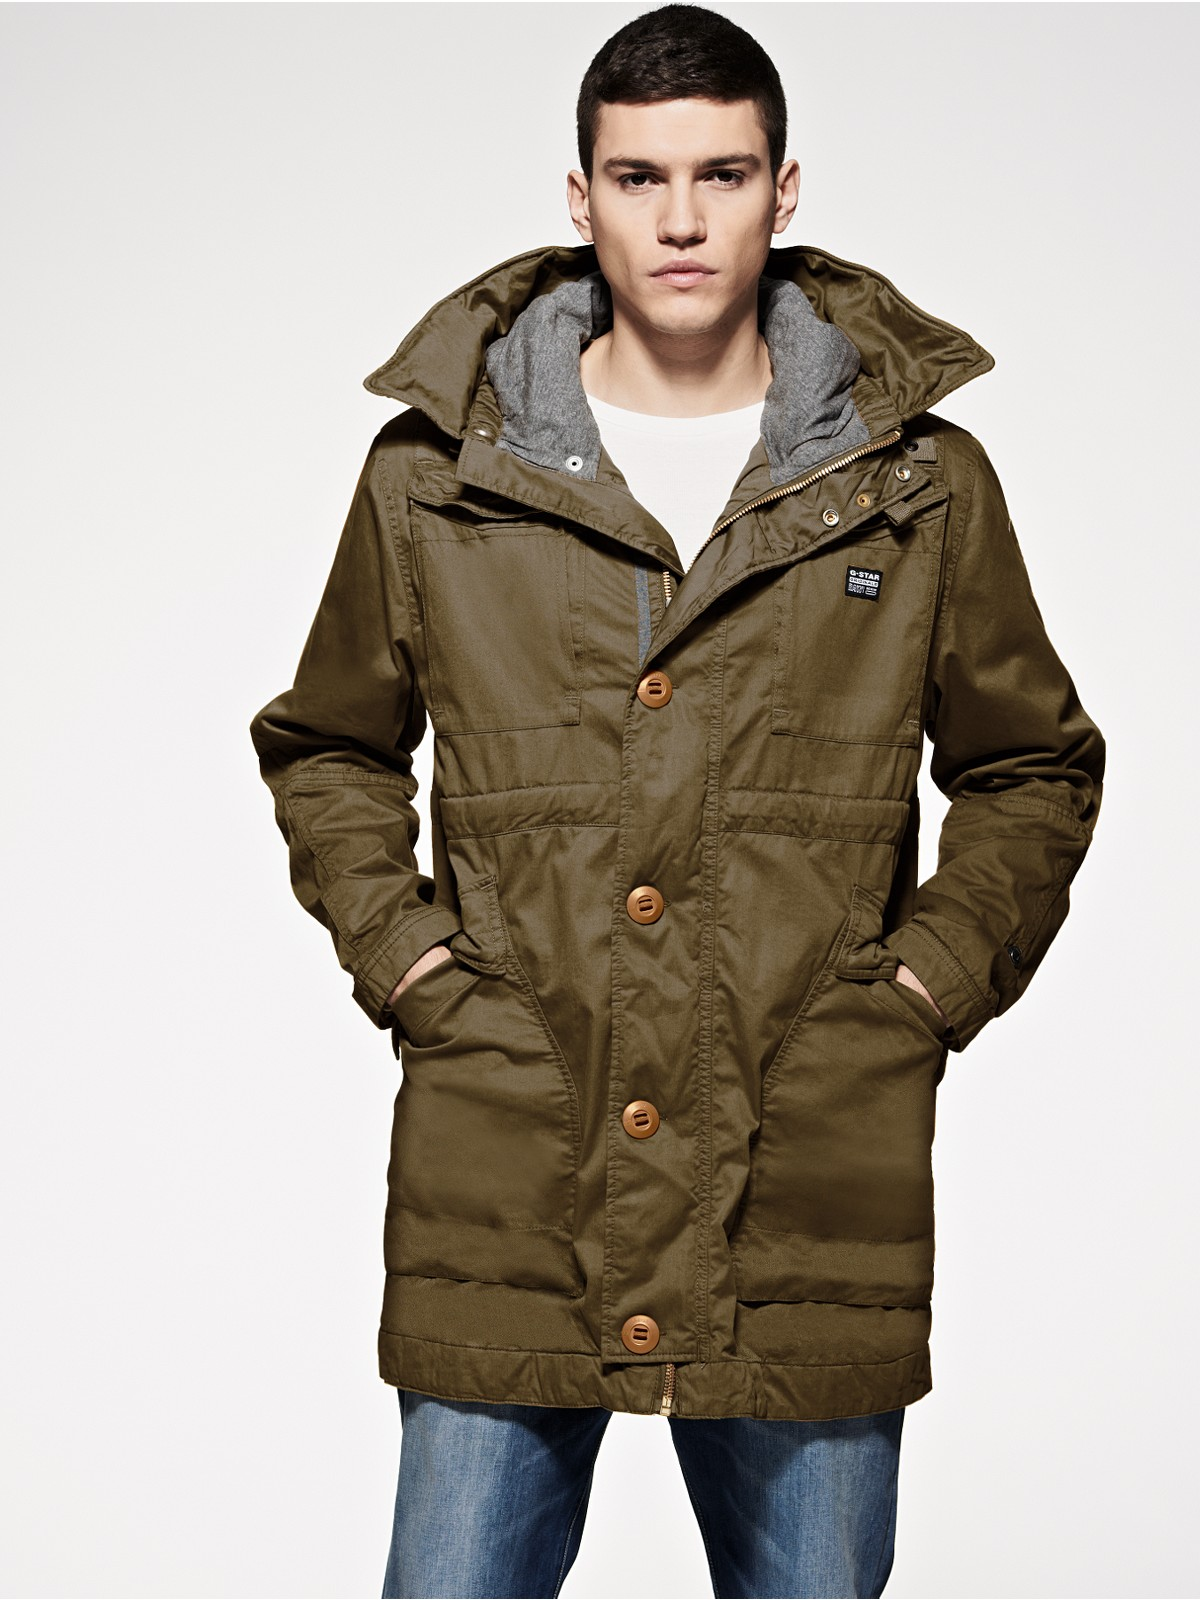 g star raw long parka coat in green for men wild olive. Black Bedroom Furniture Sets. Home Design Ideas